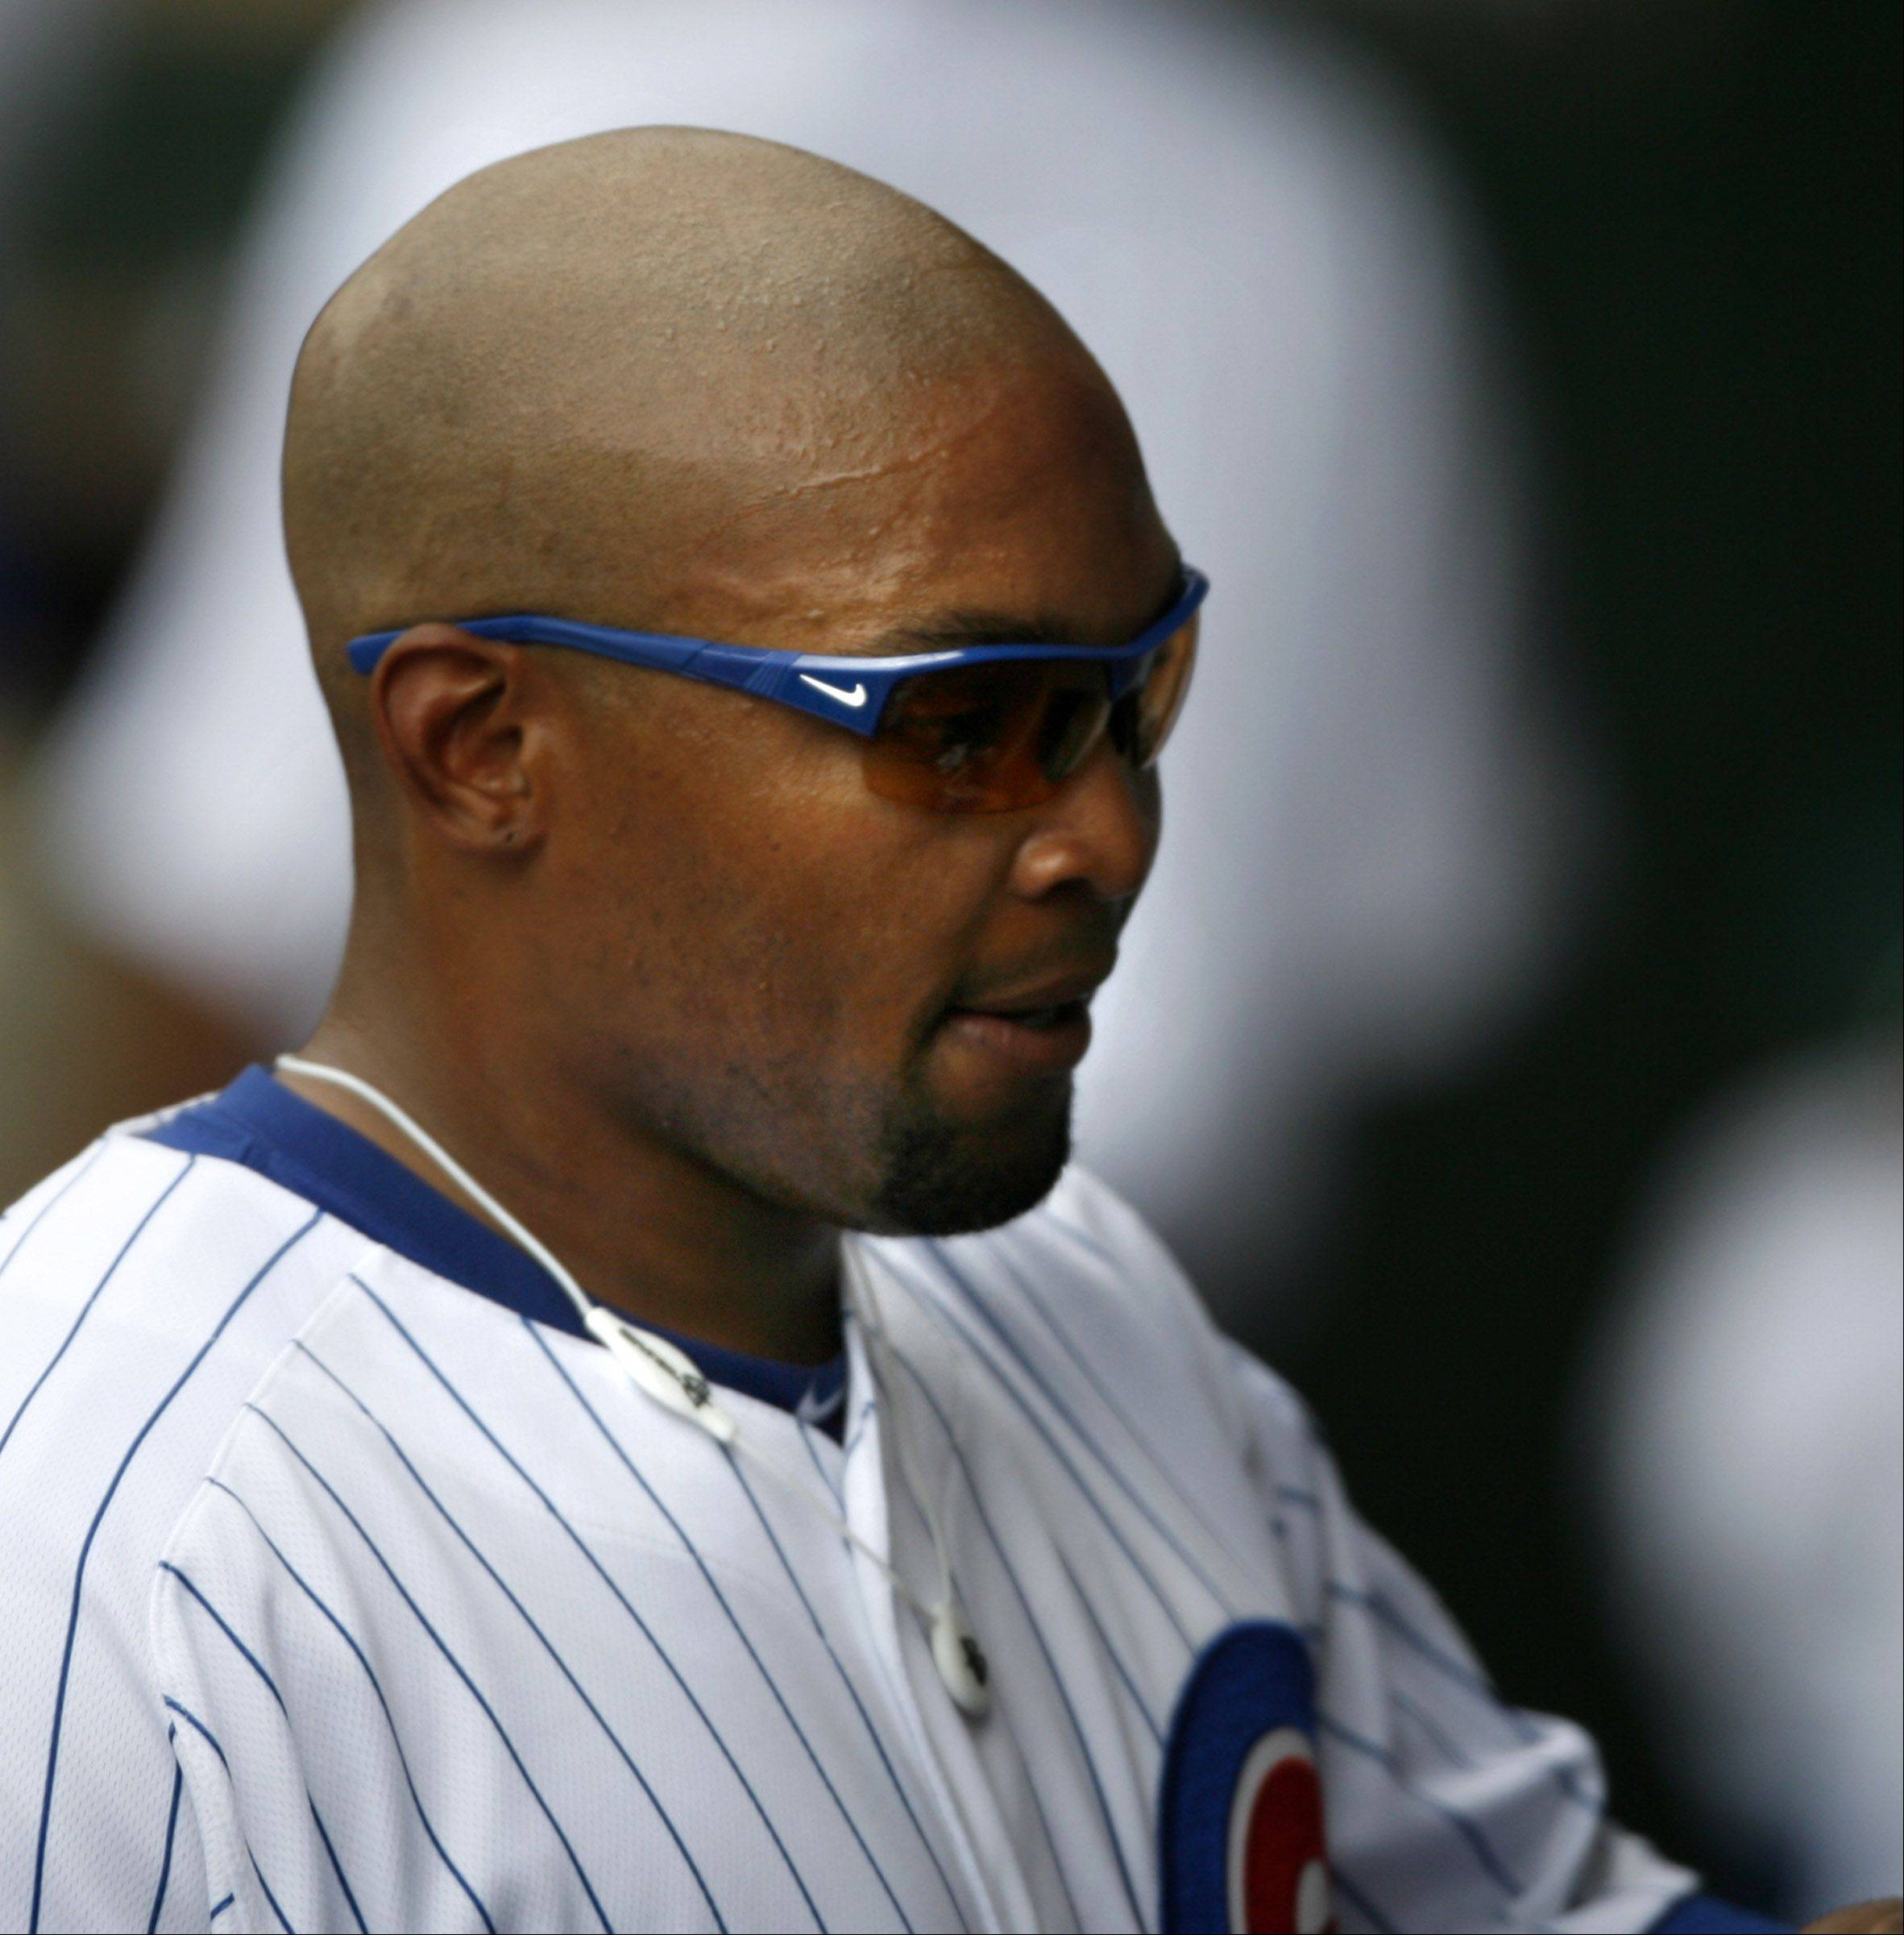 Cubs Marlon Byrd in the dugout during game with the White Sox at Wrigley Field on Saturday.